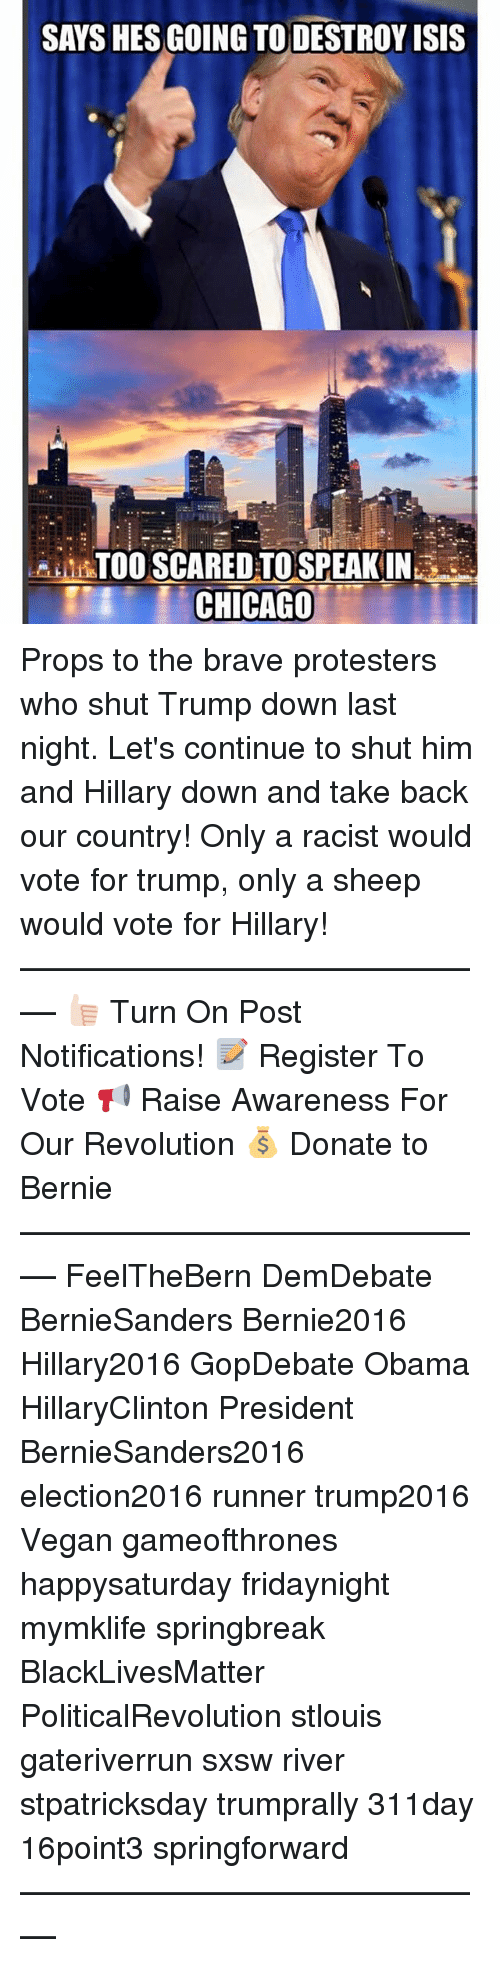 Destroy Isis: SAYS HES GOING TO DESTROY ISIS  ALI TOO SCARED TO SPEAKIN  CHICAGO Props to the brave protesters who shut Trump down last night. Let's continue to shut him and Hillary down and take back our country! Only a racist would vote for trump, only a sheep would vote for Hillary! ––––––––––––––––––––––––––– 👍🏻 Turn On Post Notifications! 📝 Register To Vote 📢 Raise Awareness For Our Revolution 💰 Donate to Bernie ––––––––––––––––––––––––––– FeelTheBern DemDebate BernieSanders Bernie2016 Hillary2016 GopDebate Obama HillaryClinton President BernieSanders2016 election2016 runner trump2016 Vegan gameofthrones happysaturday fridaynight mymklife springbreak BlackLivesMatter PoliticalRevolution stlouis gateriverrun sxsw river stpatricksday trumprally 311day 16point3 springforward –––––––––––––––––––––––––––